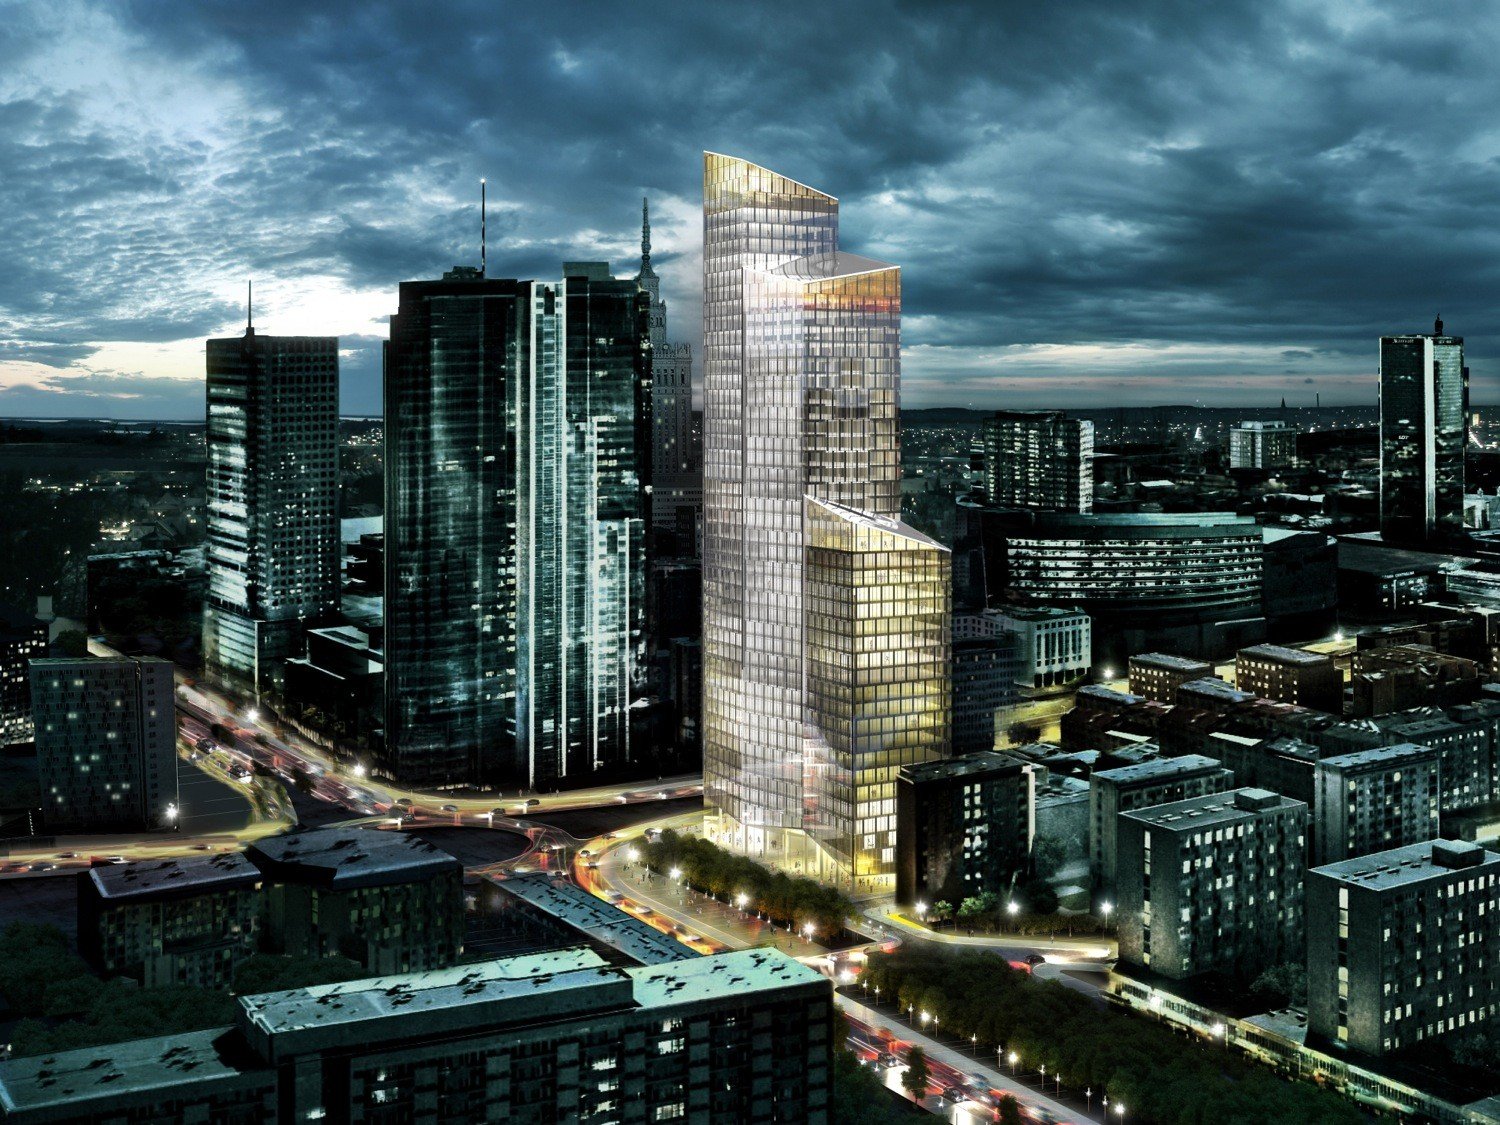 Schmidt Hammer Lassen's LEED Gold 188 meter tall office tower in central Warsaw.